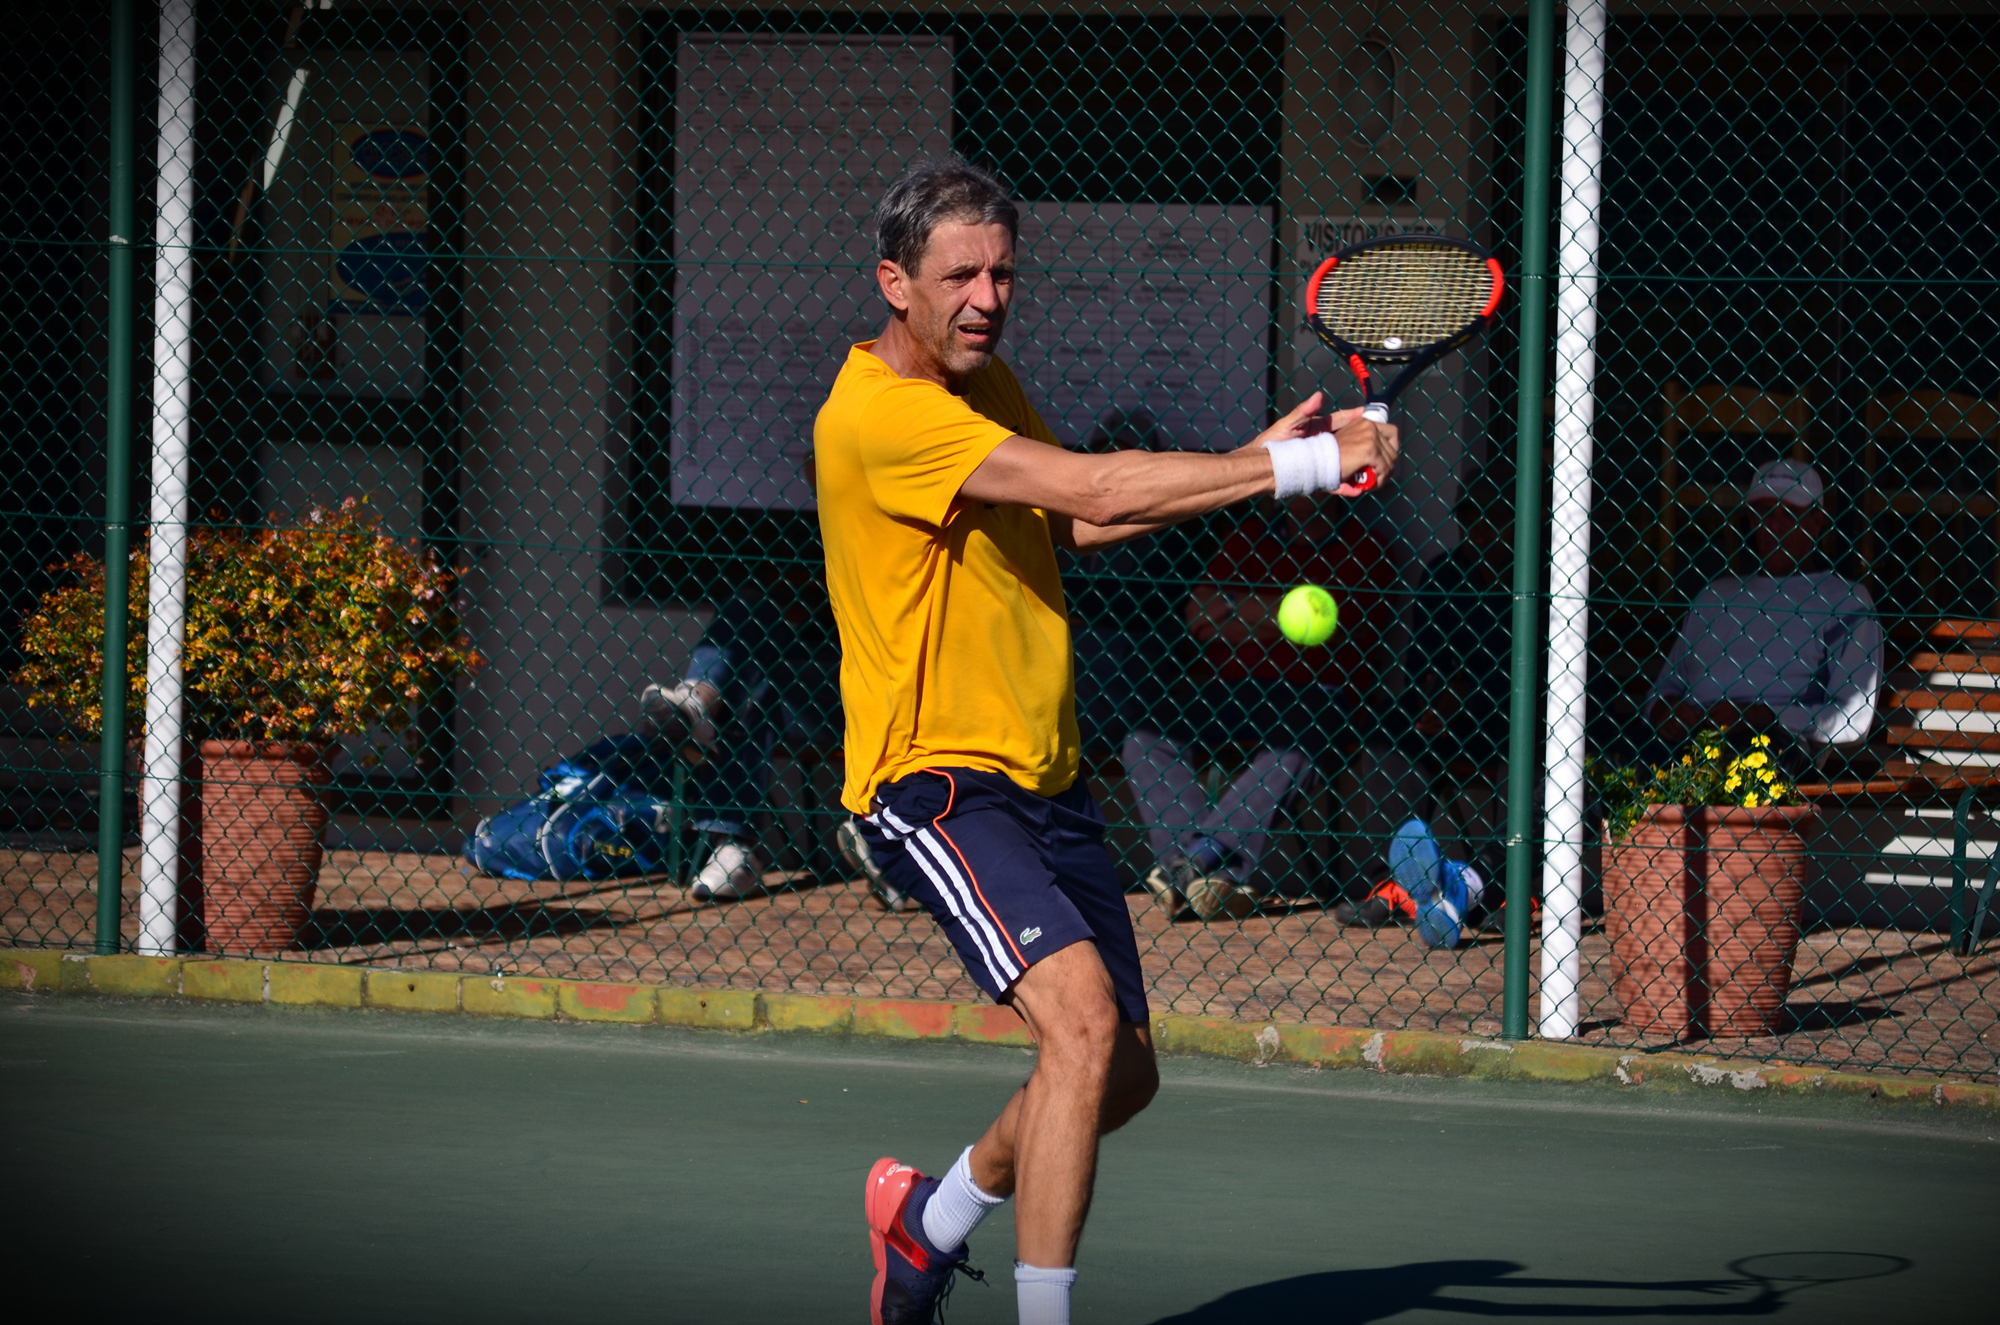 Bertrand backhand